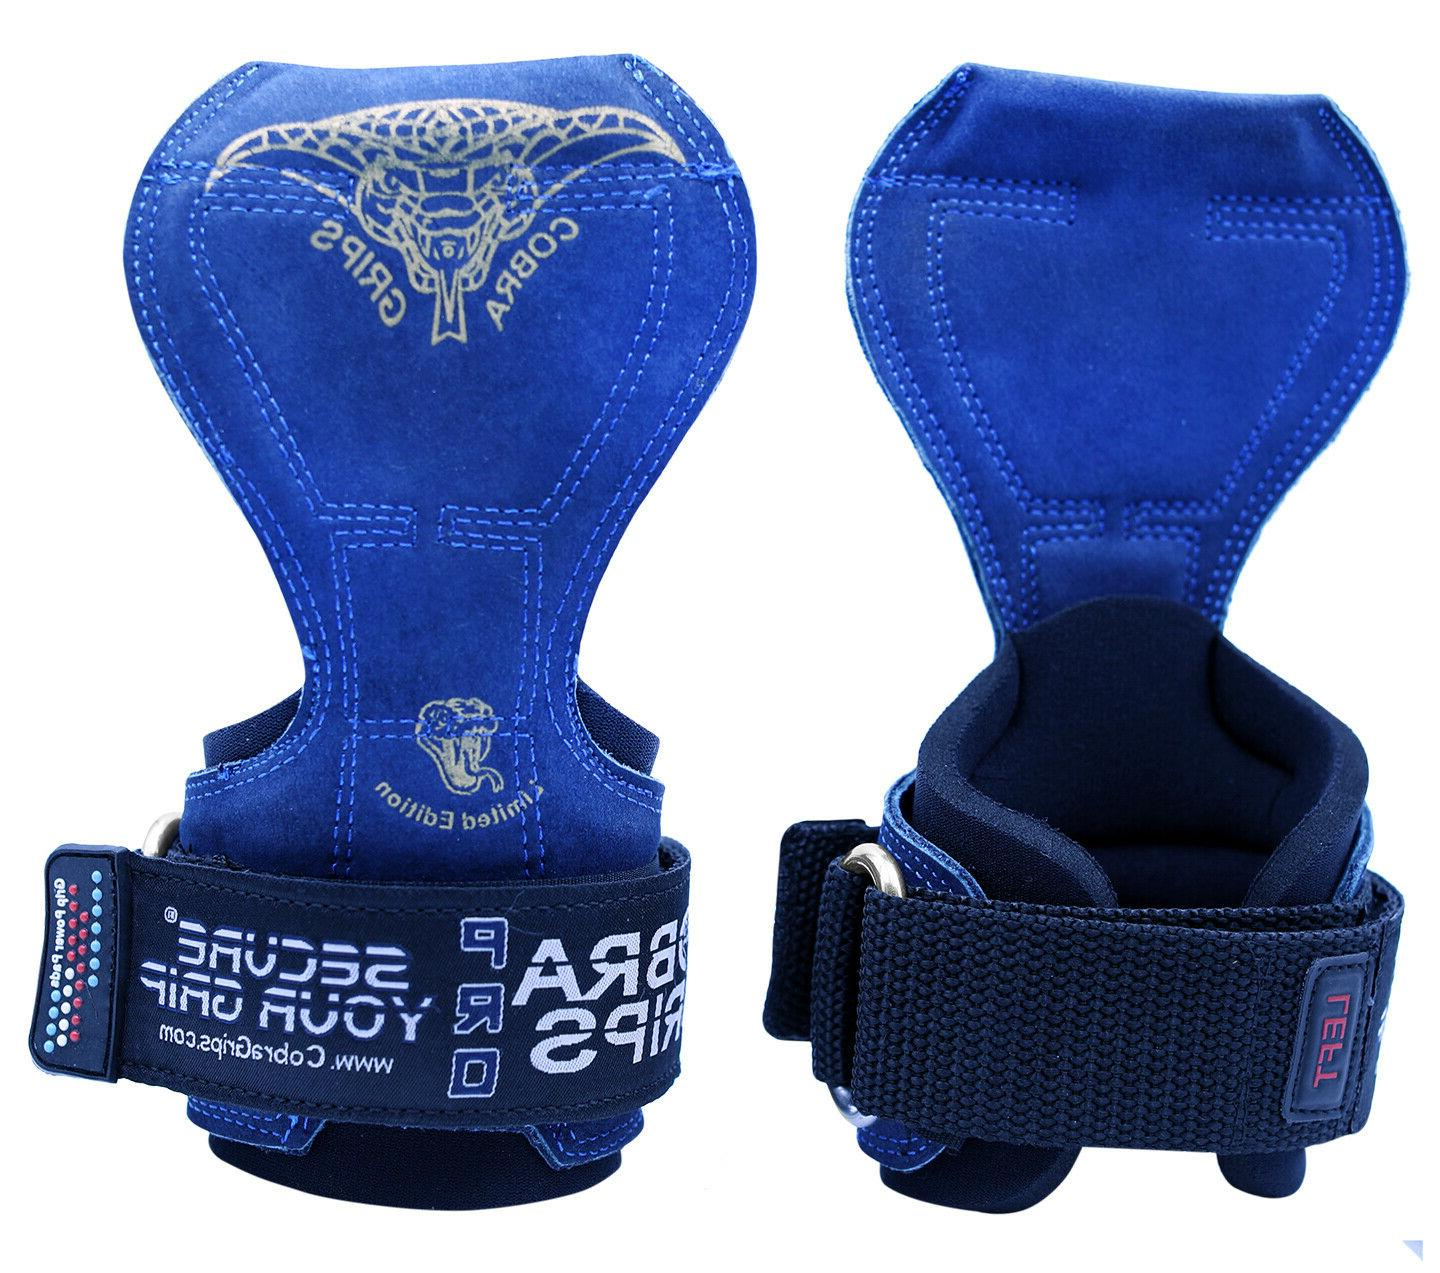 Cobra Grips Series Weight Lifting Straps Grips